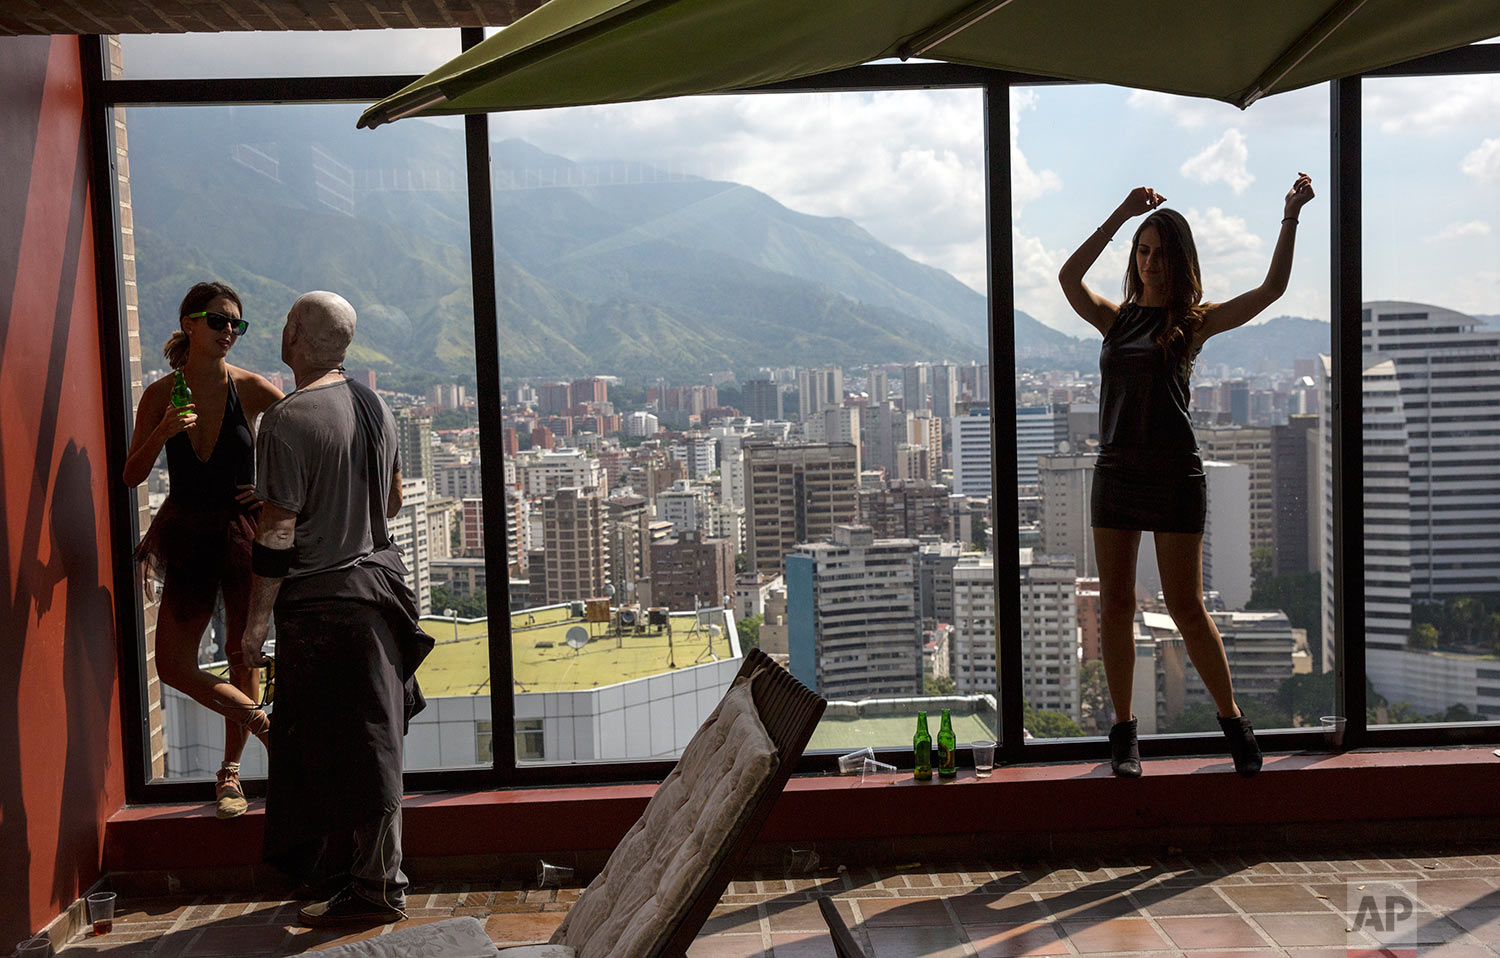 A women dances in the morning, following an all-night party in the presidential suite of an upscale hotel in Caracas, Venezuela, Sunday, Oct. 29, 2017. (AP Photo/Rodrigo Abd)